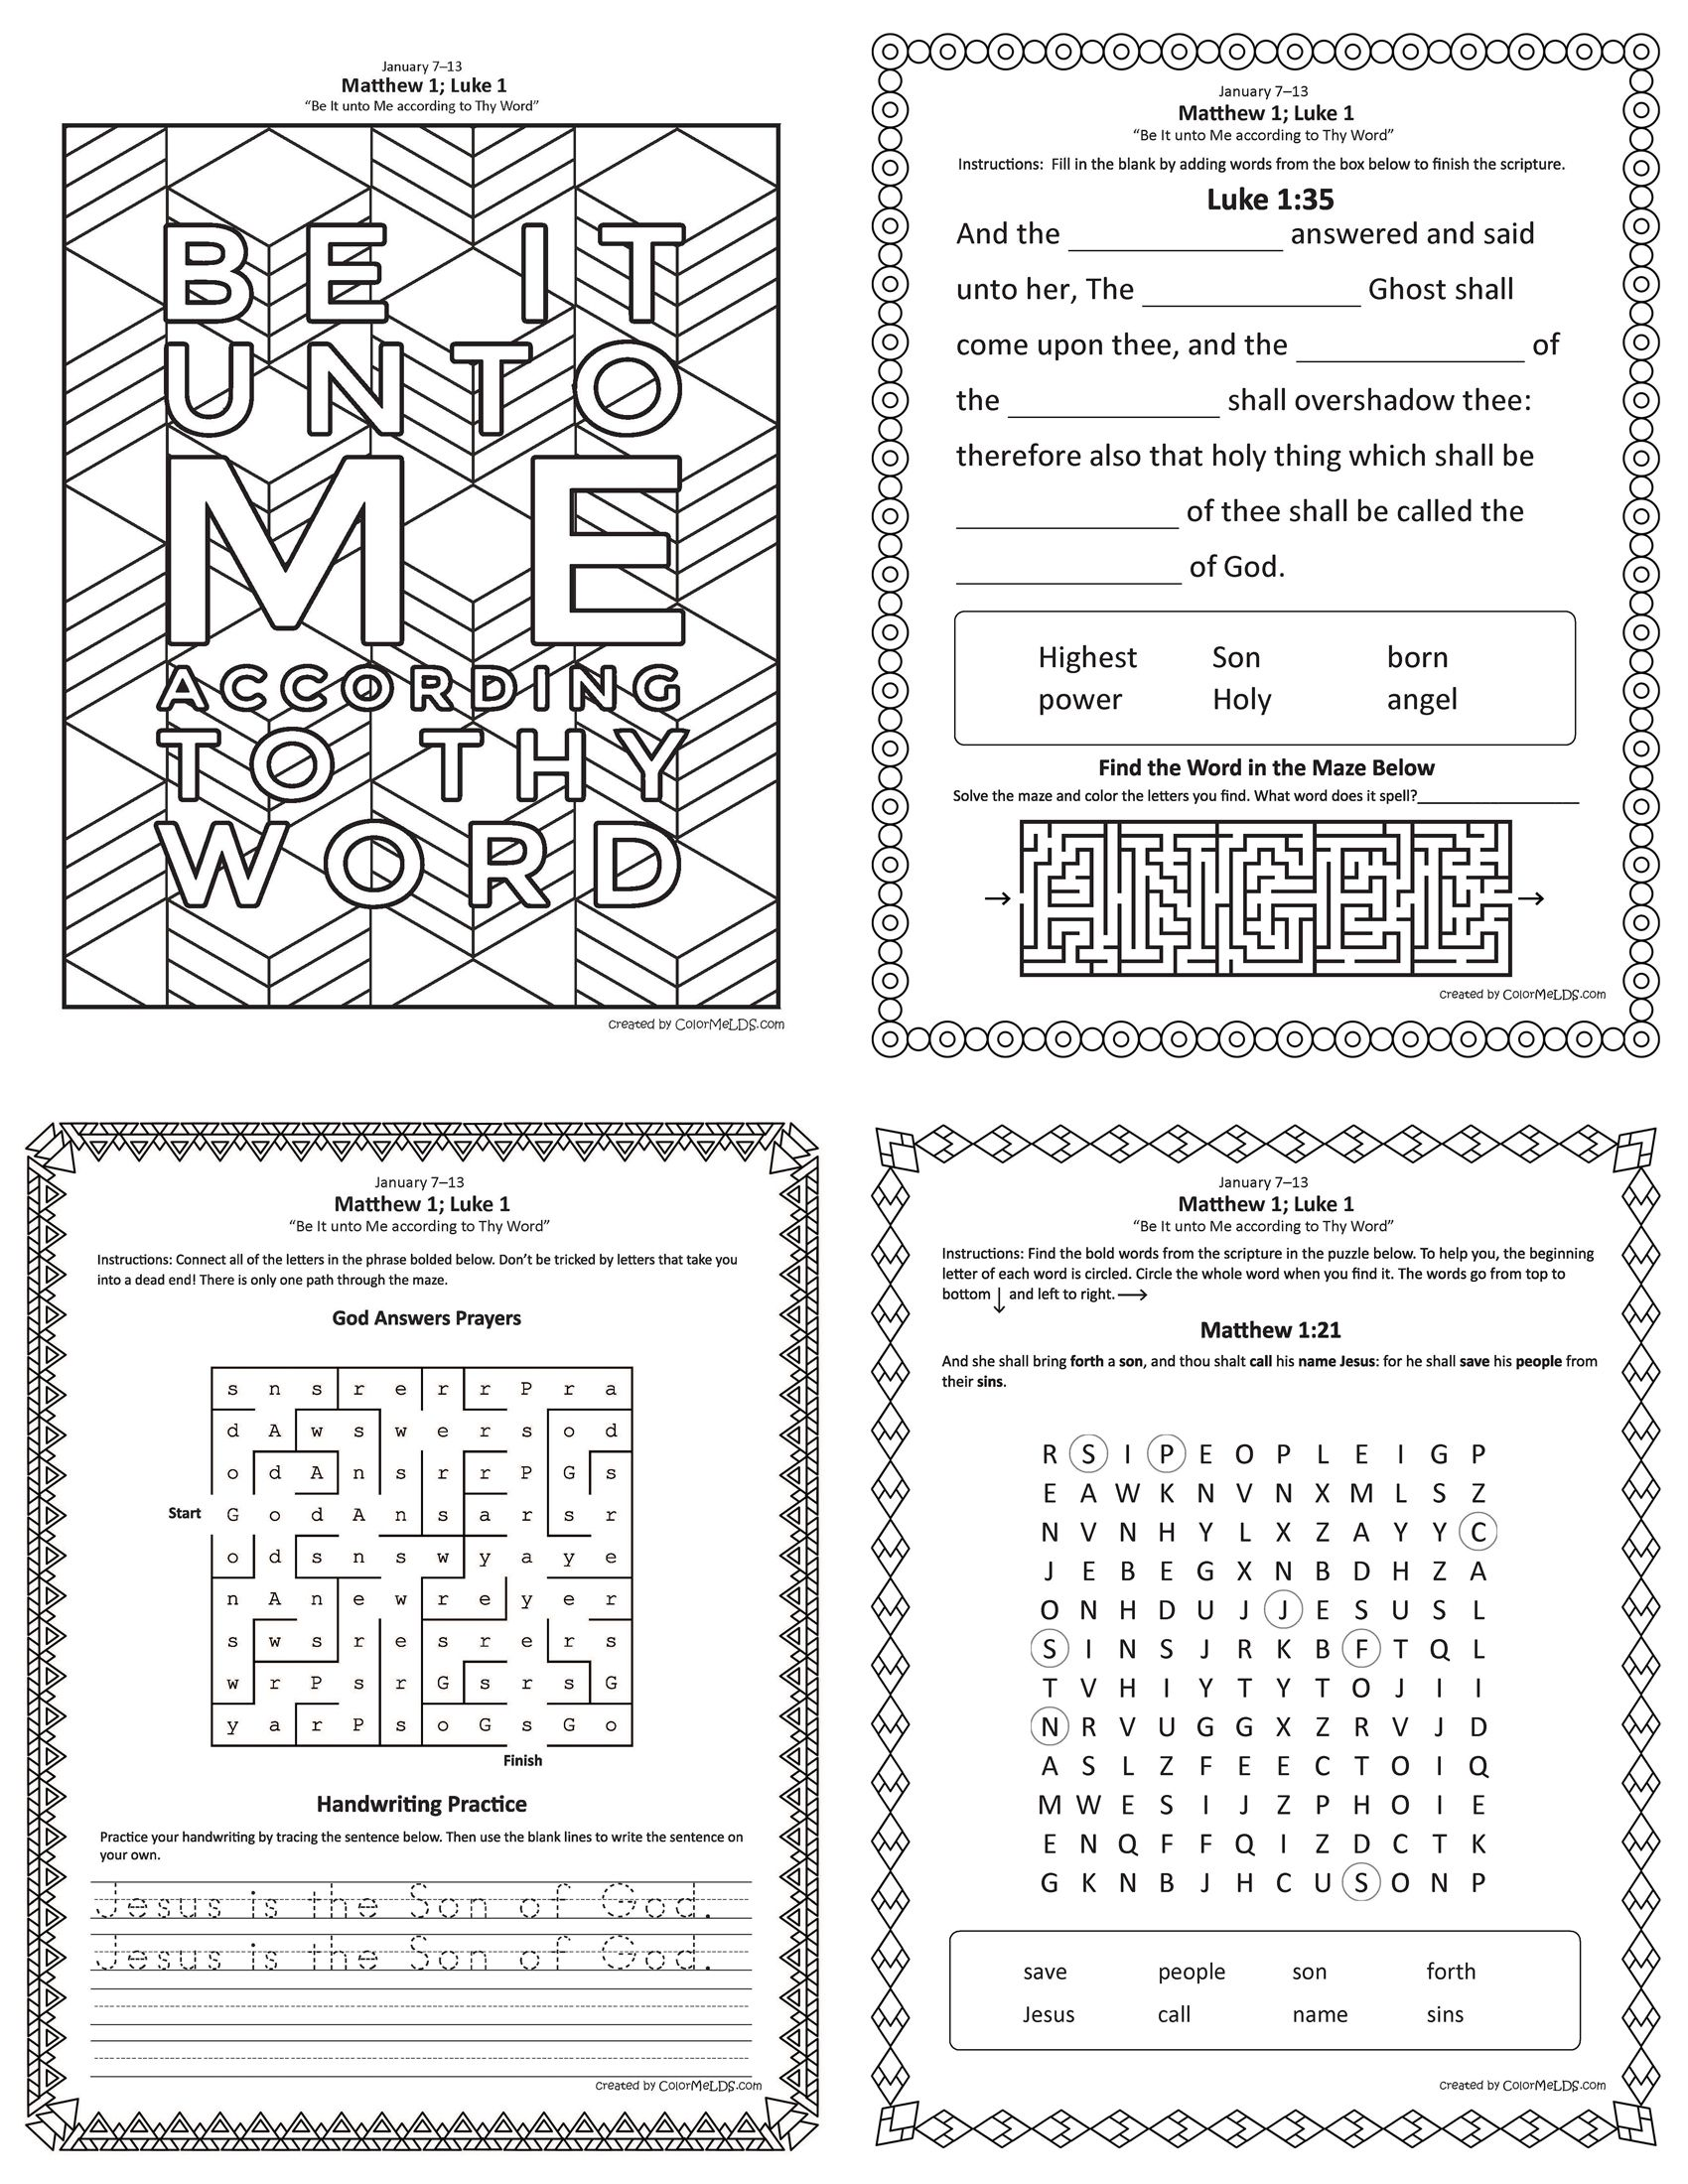 free lds worksheets and printables word crumb mazes. Black Bedroom Furniture Sets. Home Design Ideas